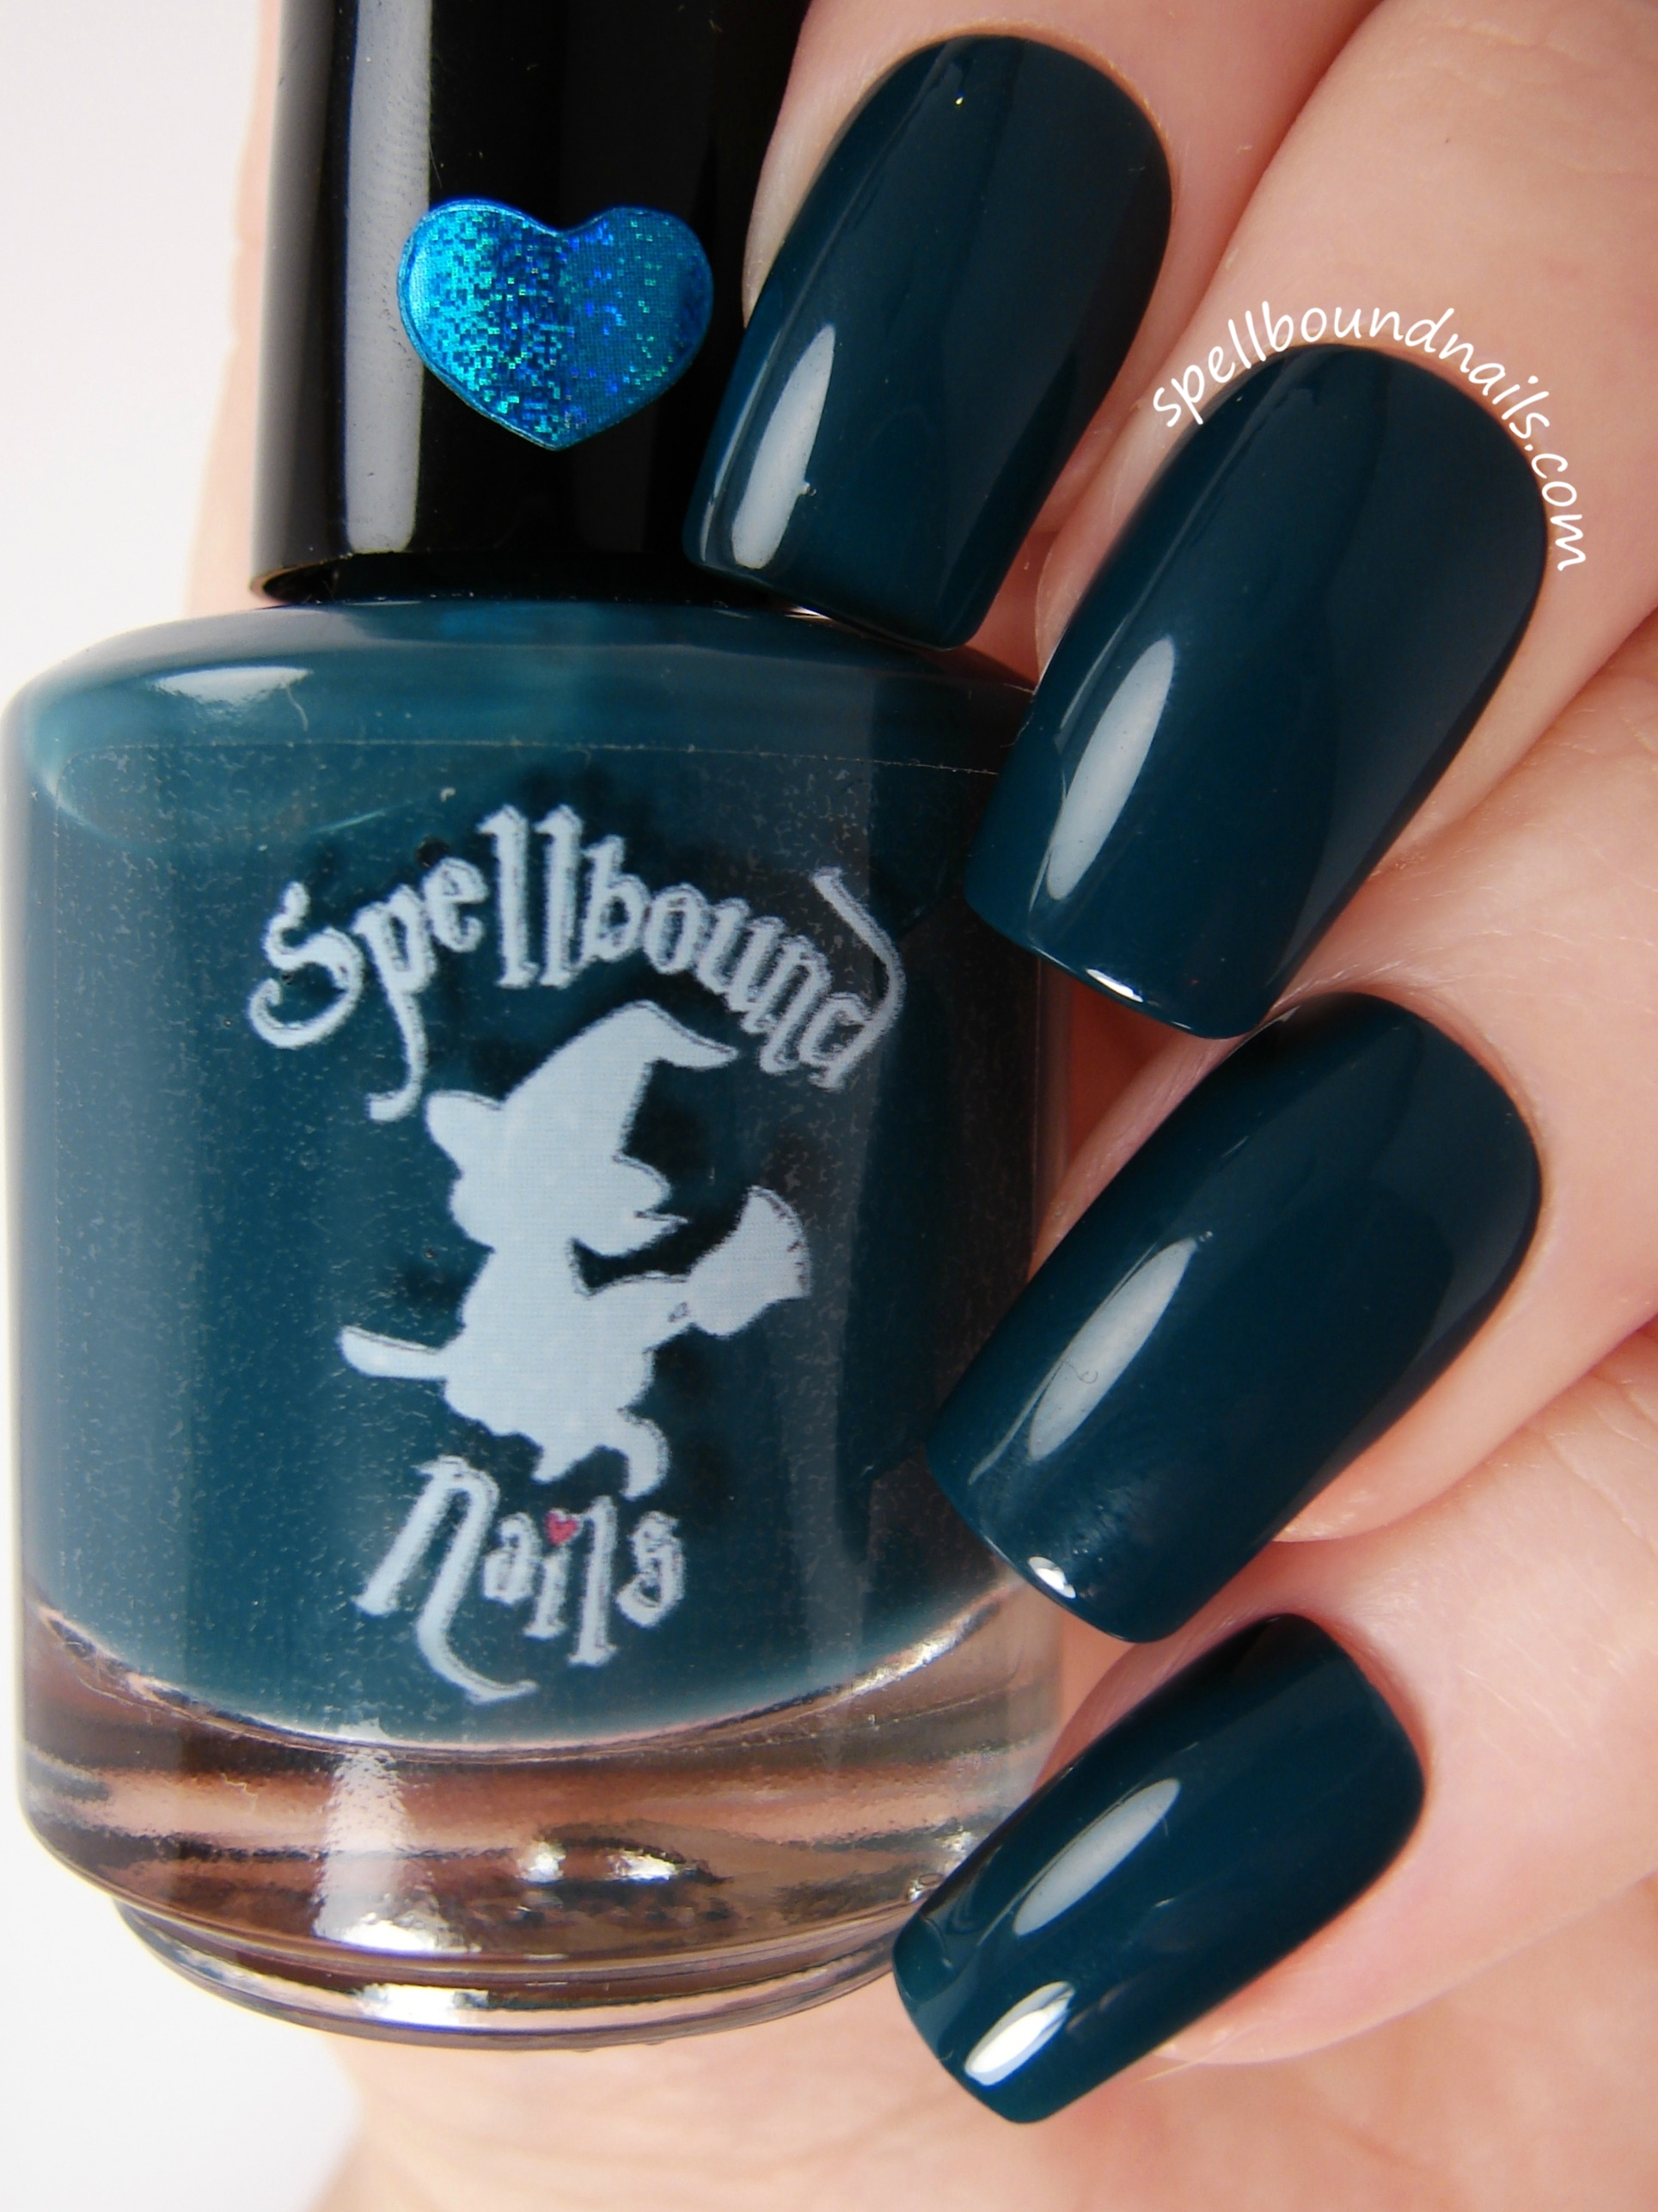 Witching Hour - Dark Blue Teal Creme Nail Polish · Spellbound Nails ...